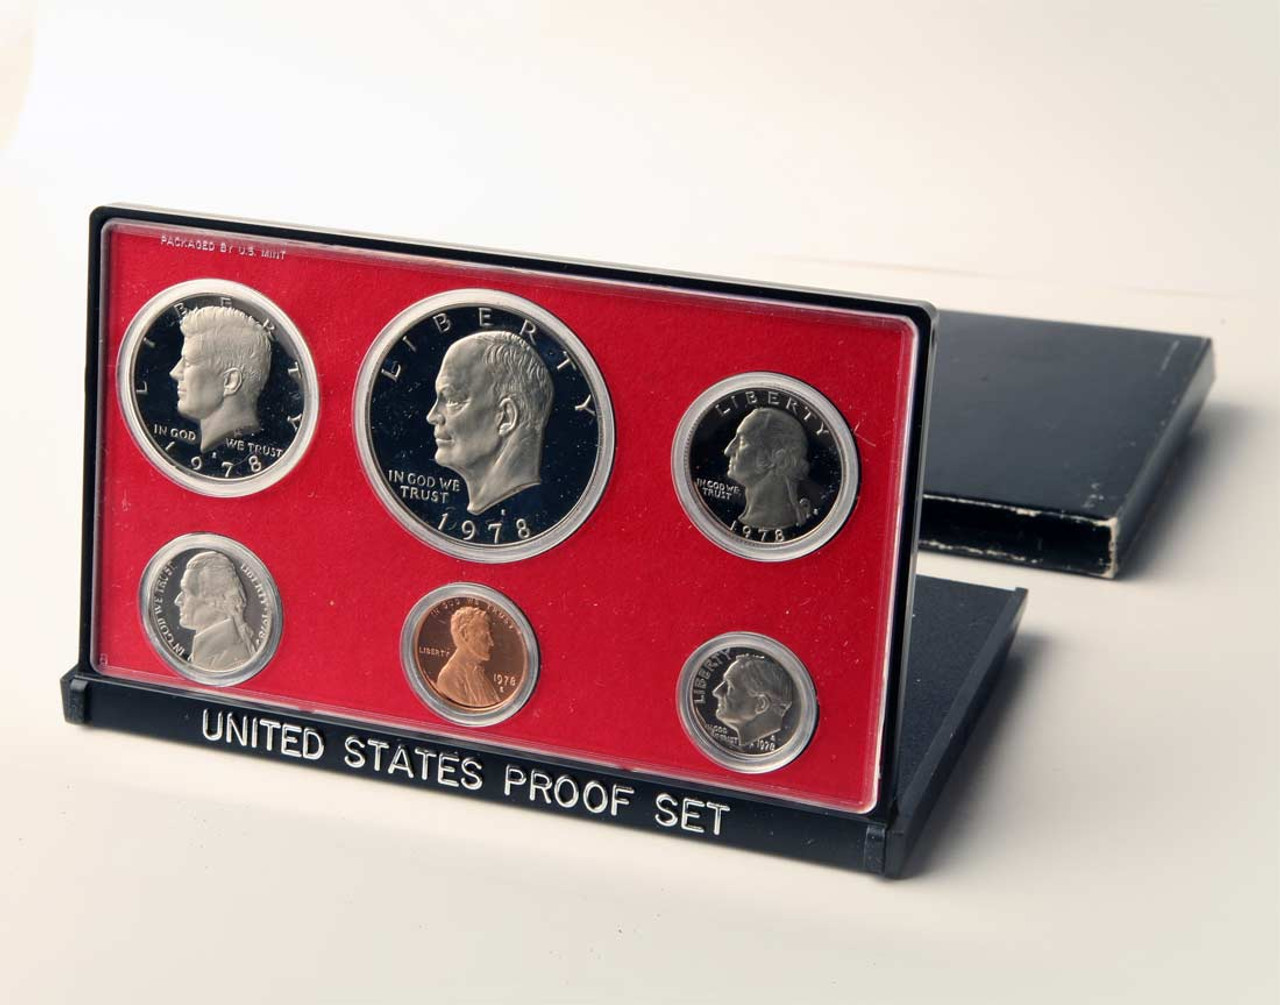 1978 S United States Proof Set Coins